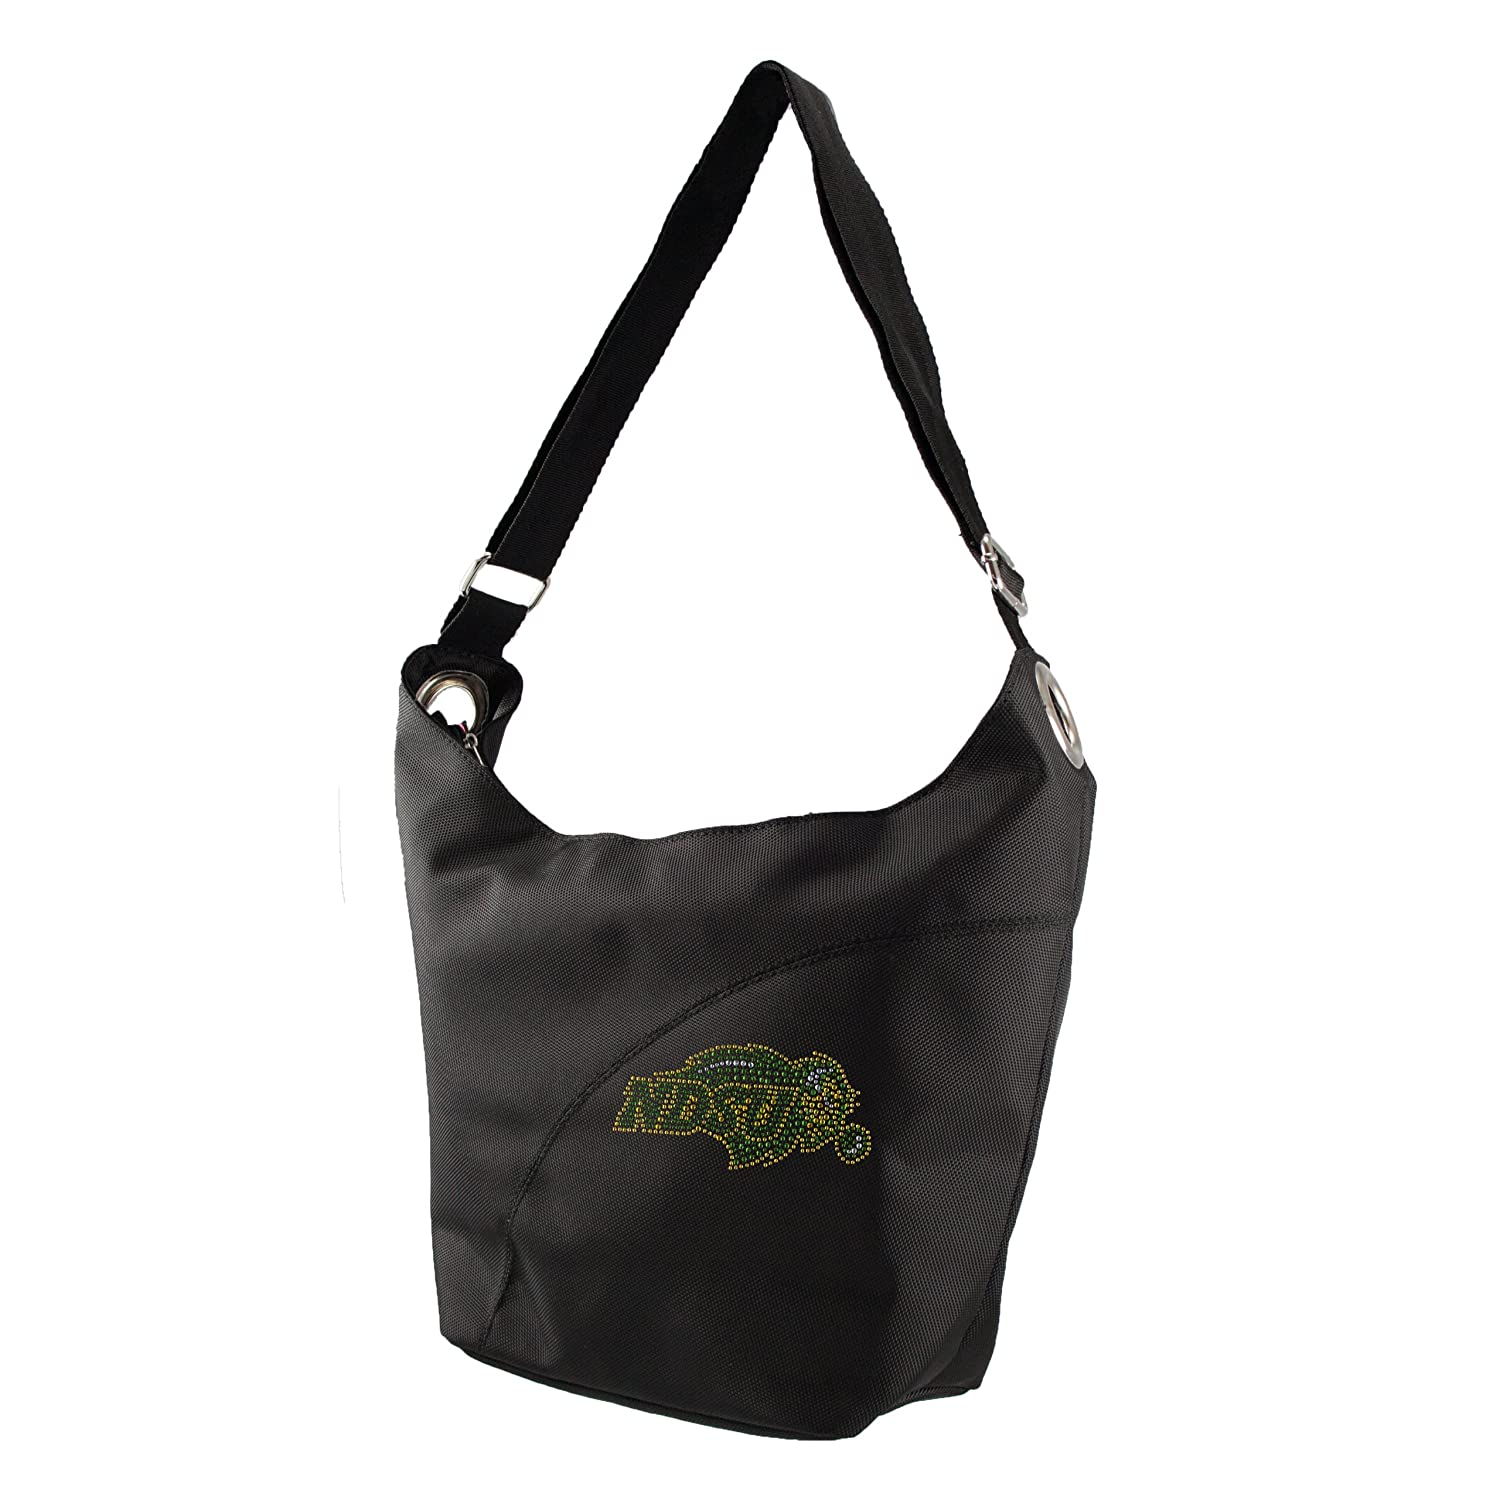 NCAA North Dakota State Bison Sport Noir Glanz Hobo-Tasche, Schwarz